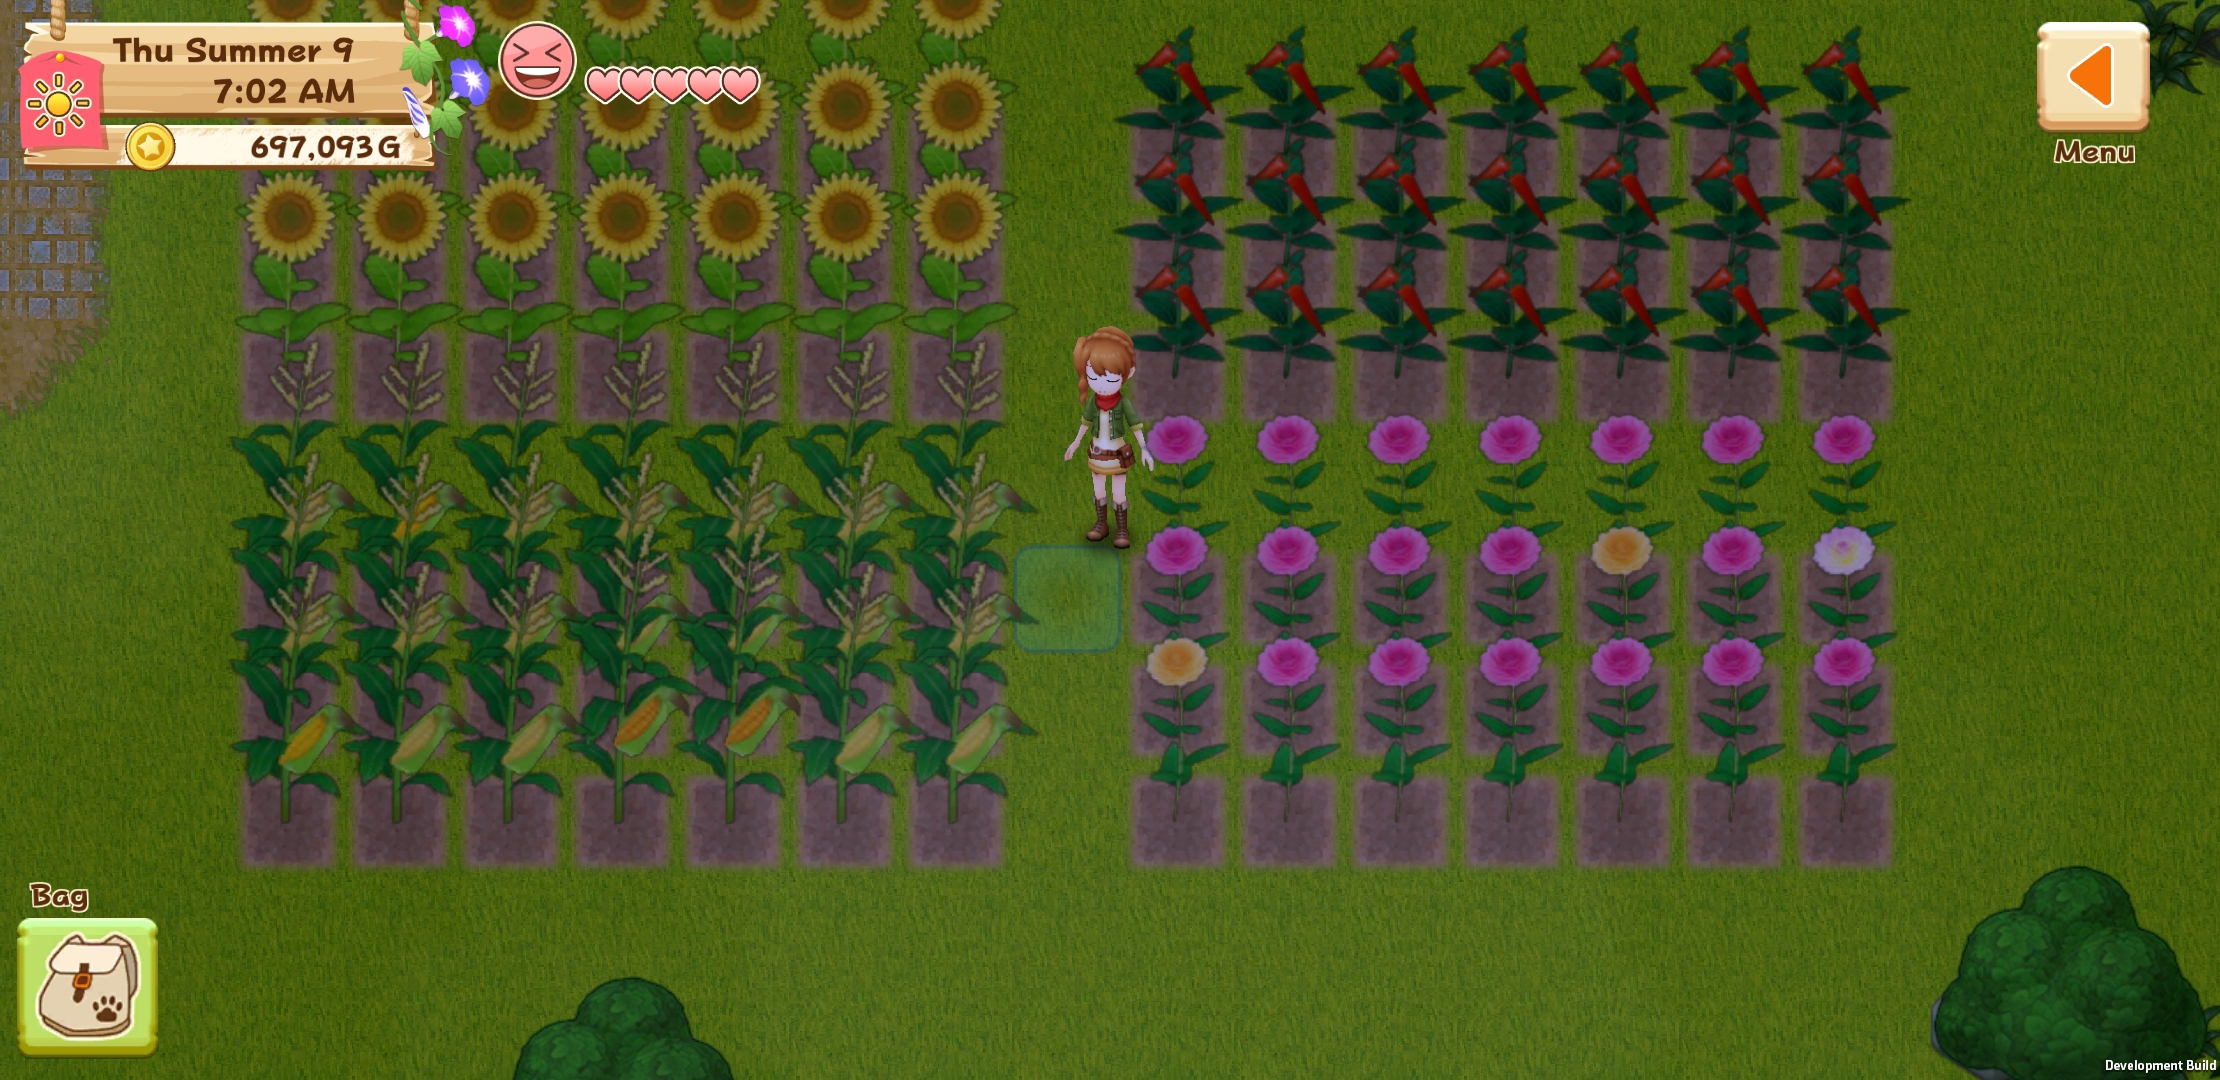 harvest-moon-light-of-hope-for-ios-android-coming-soon4-frikigamers.com.jpg